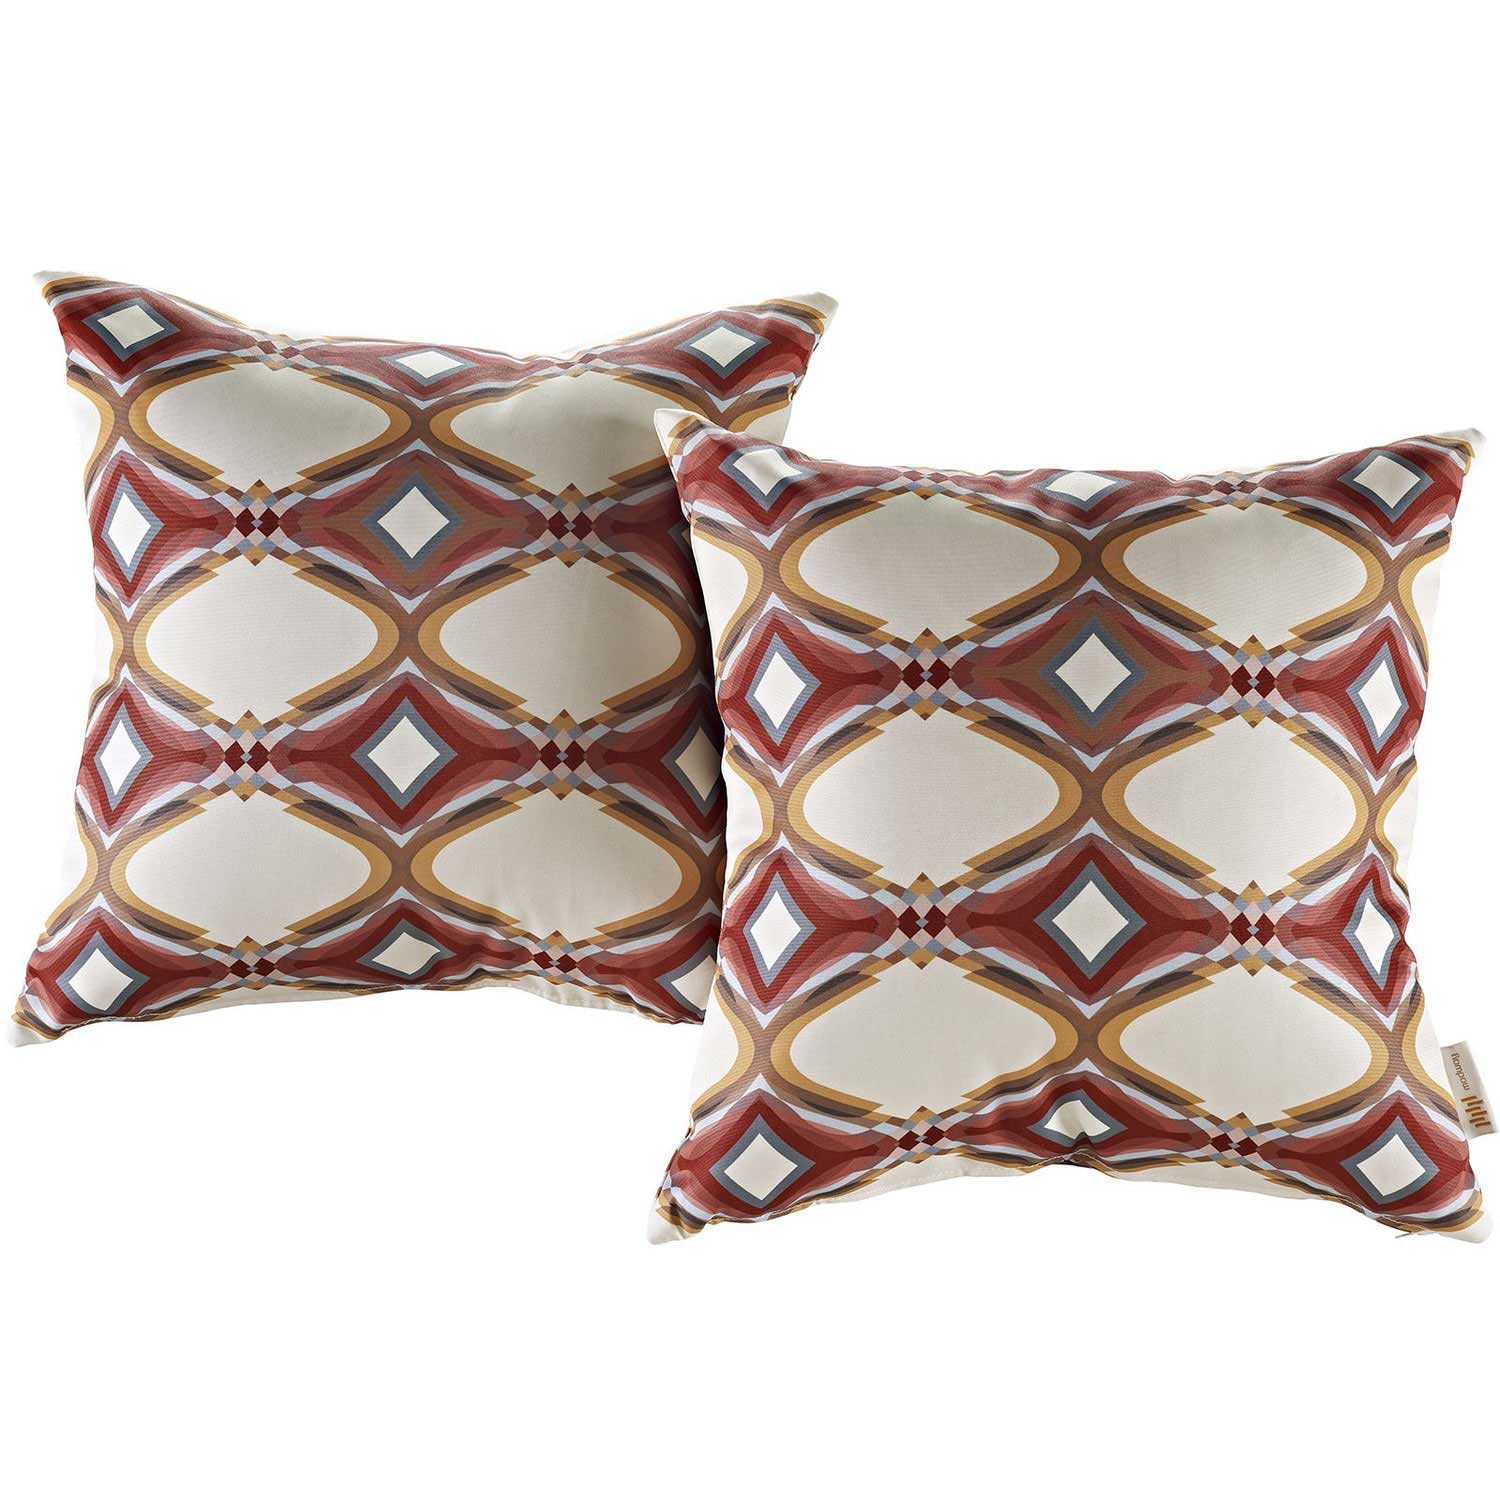 Modway Modway Two Piece Outdoor Patio Pillow Set - Repeat